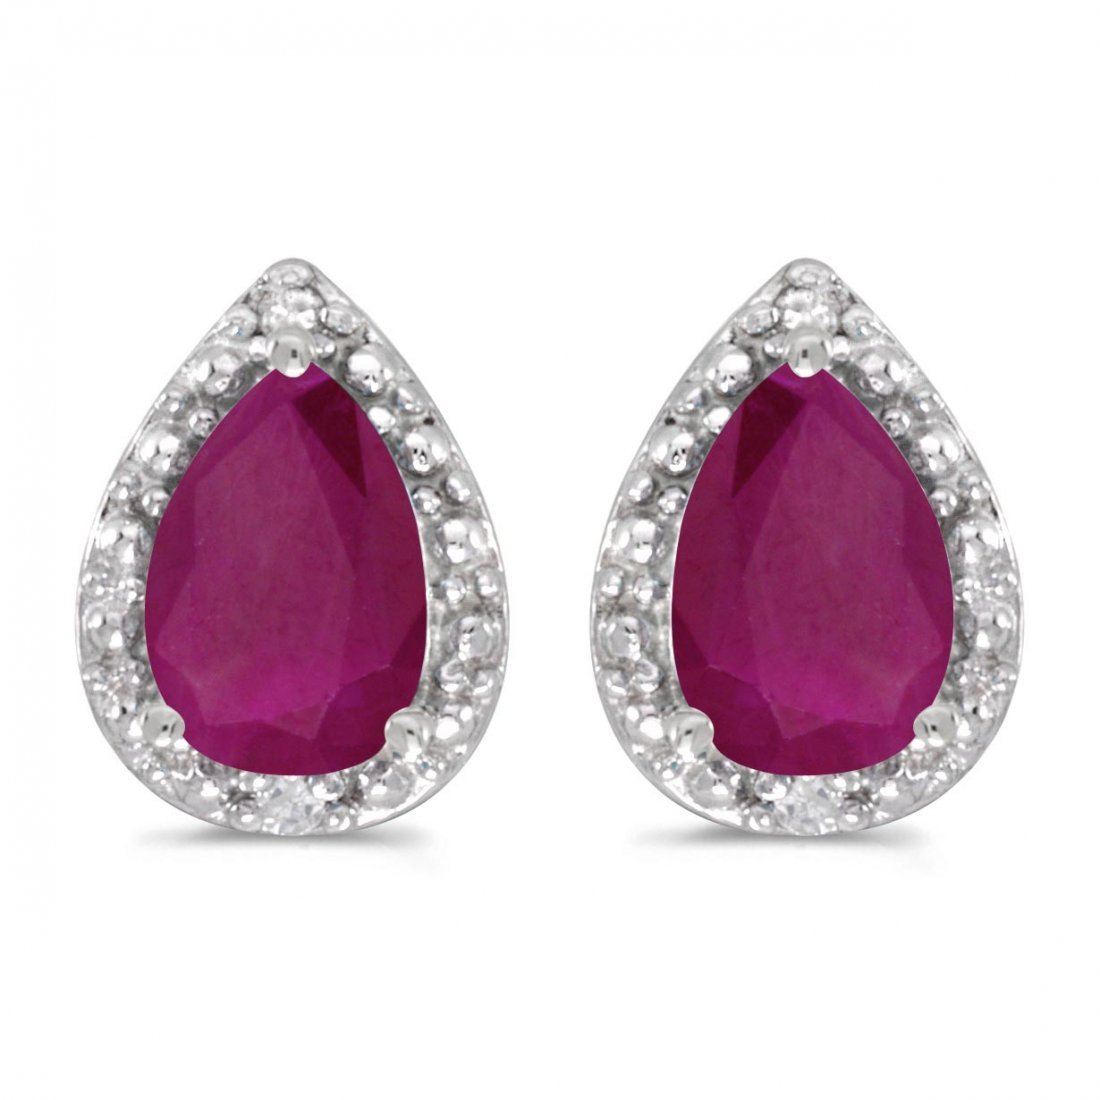 Certified 14k White Gold Pear Ruby And Diamond Earrings